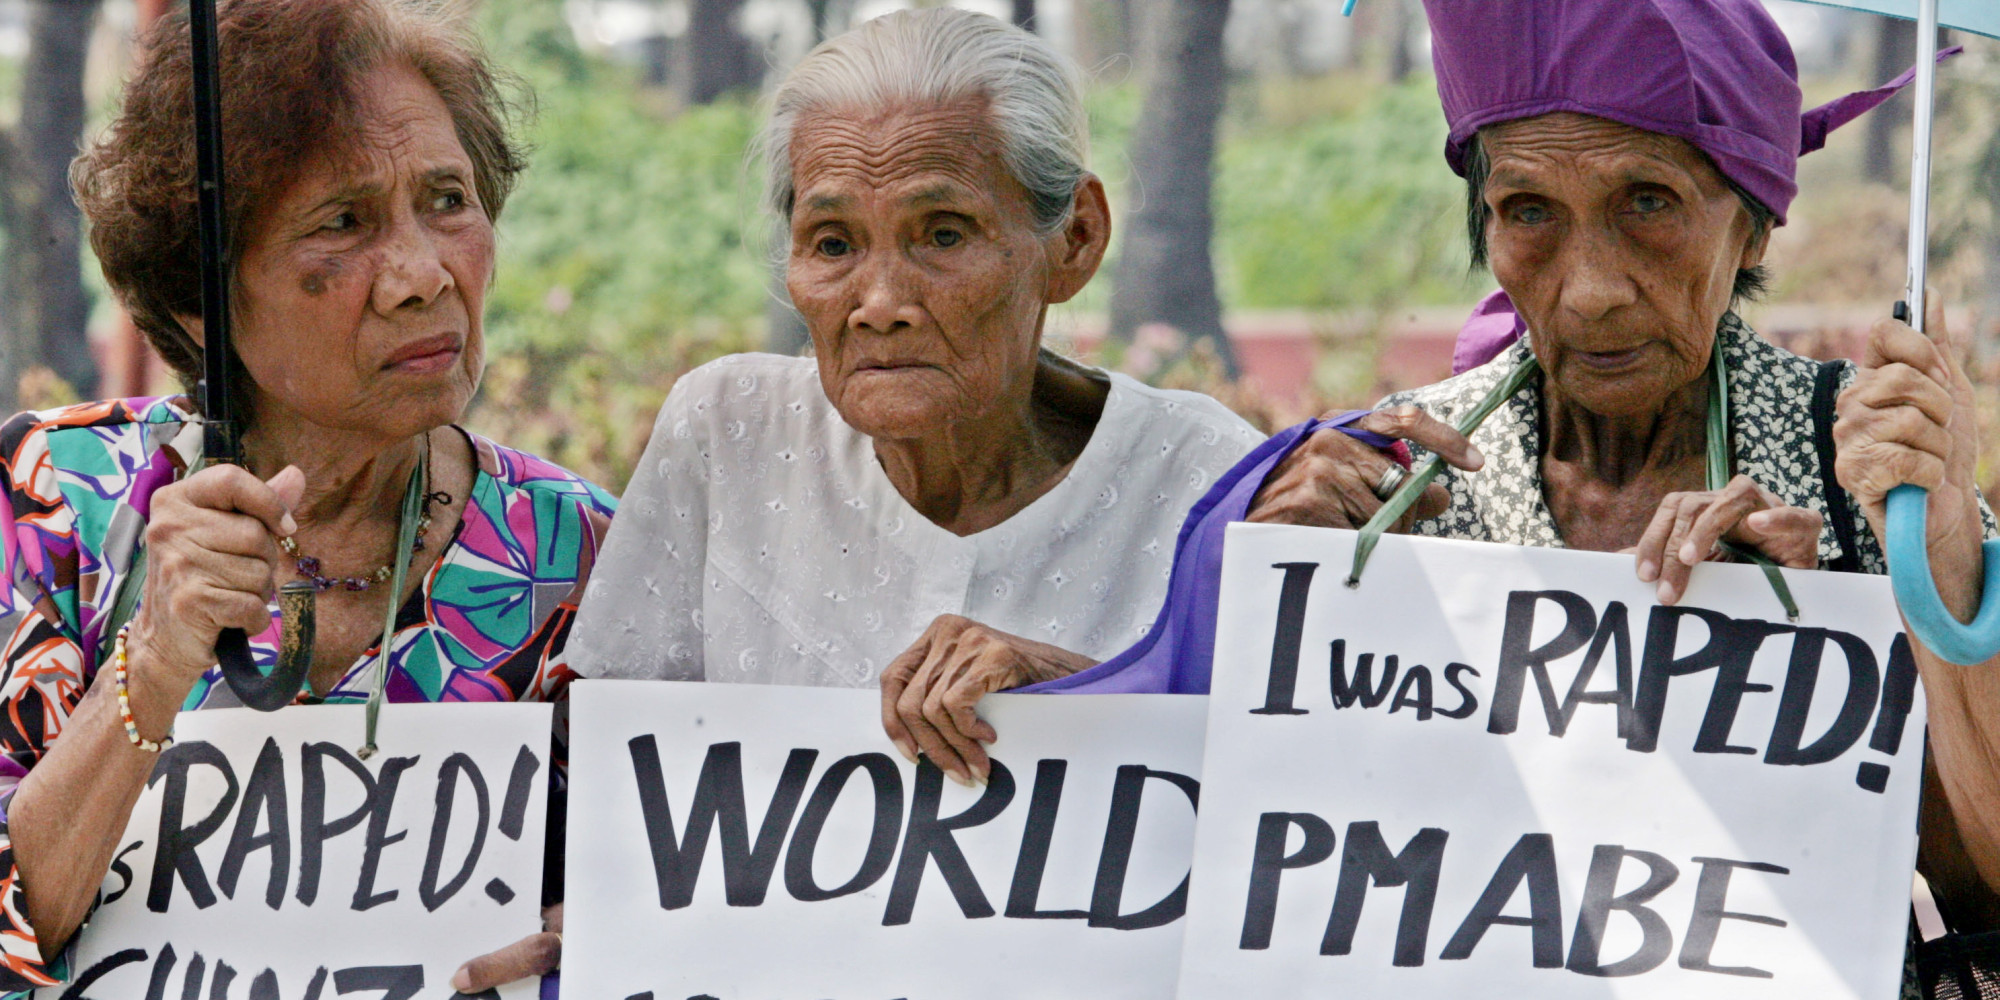 japans comfort women The government in 1993 did commission and publish a study officially recognizing the existence of comfort women and the role of japanese soldiers.